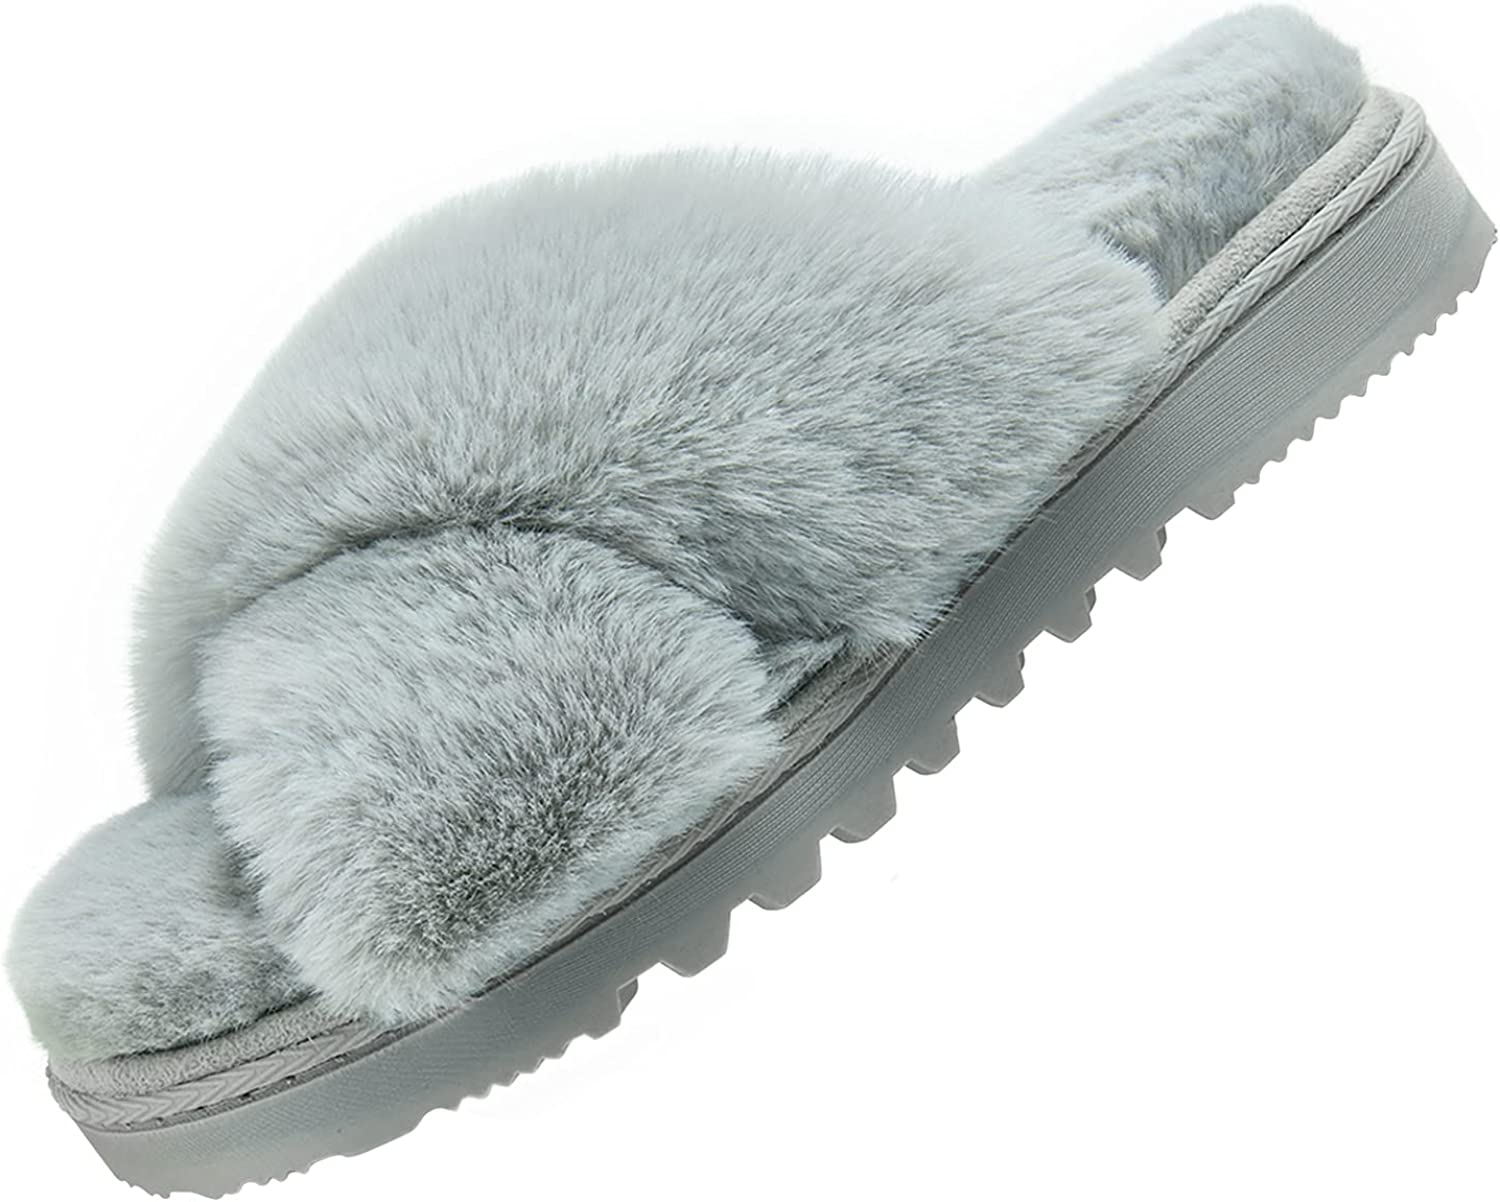 Telifor Womens-Fluffy-Memory-Foam-Cross-Band-Slippers Indoor low-pricing Fu outlet